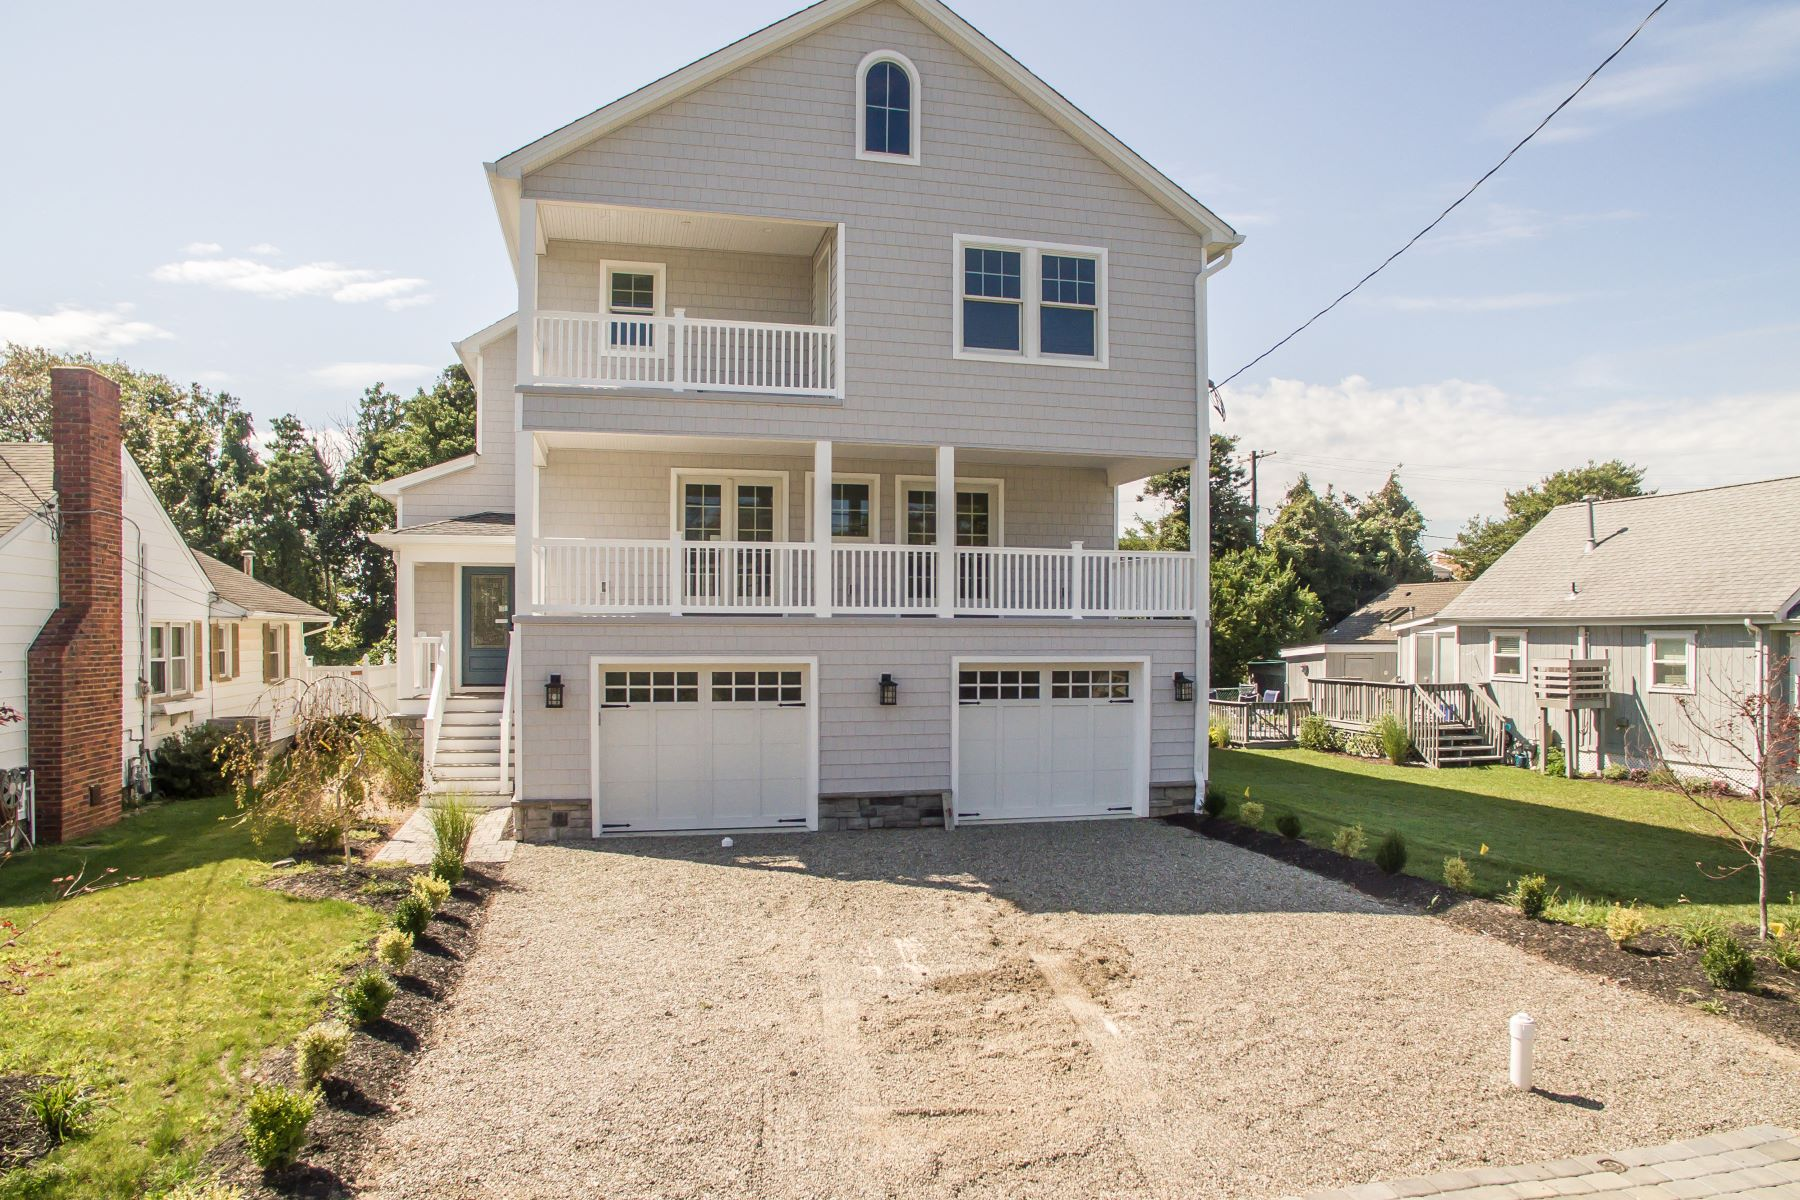 Single Family Home for Sale at Presenting Coastal Charm At It's Finest 306 Carter Avenue, Point Pleasant Beach, New Jersey 08742 United States